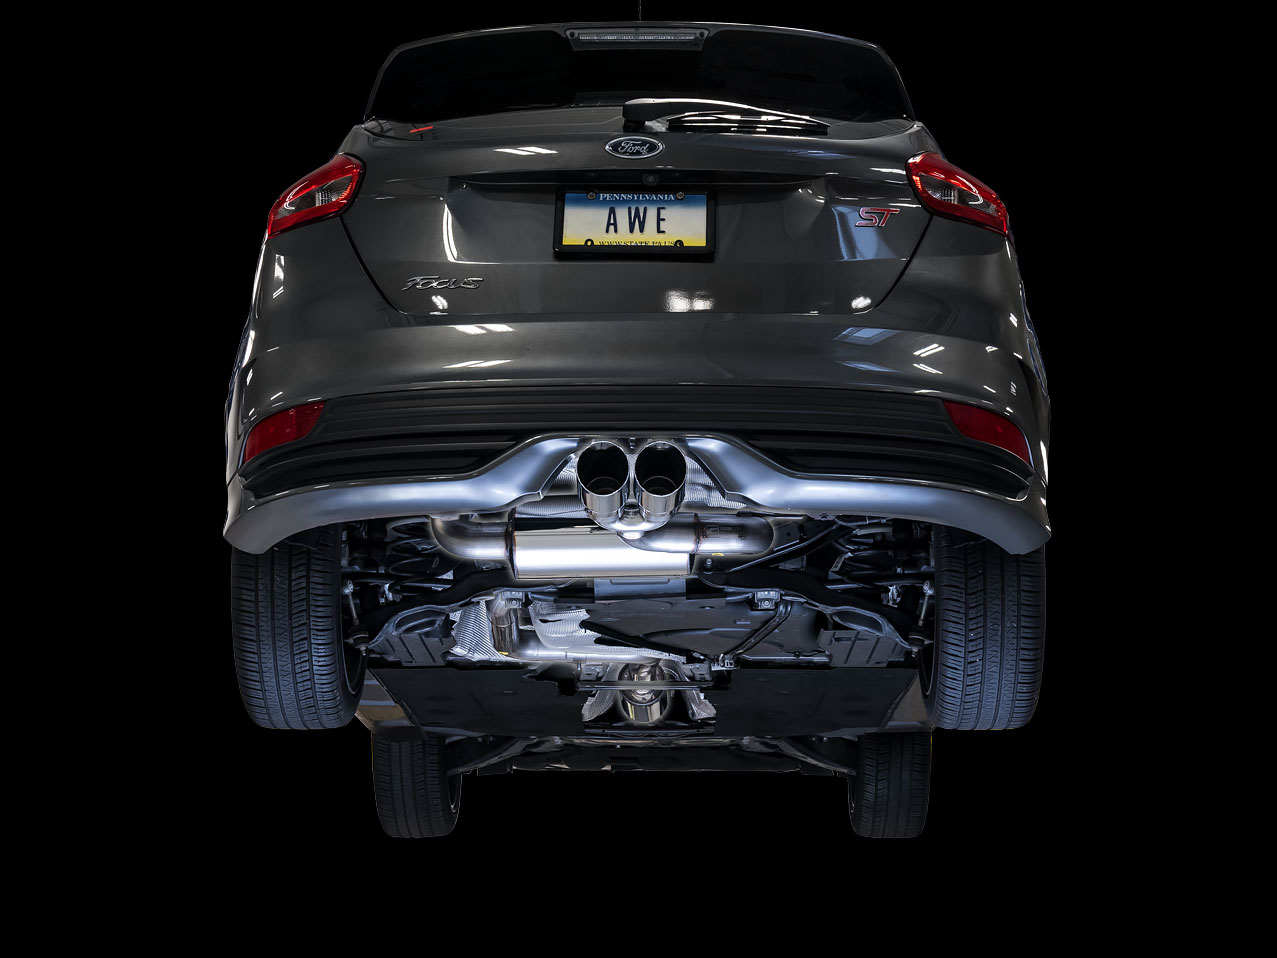 AWE Touring Edition Cat-back Exhaust for Ford Focus ST - Resonated - Chrome Silver Tips